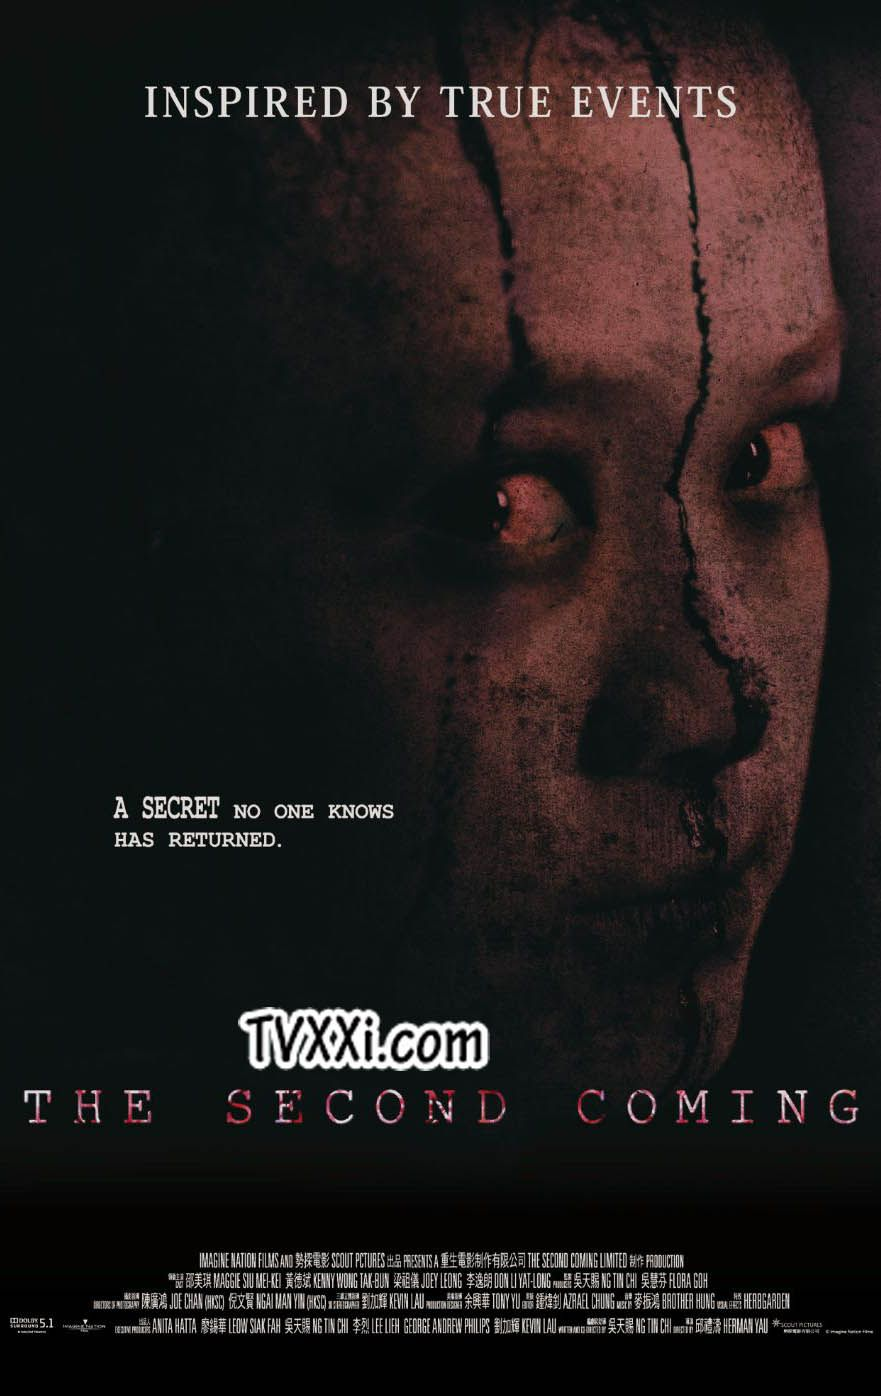 The Second Coming Tvxxi Film Horror Misteri China Subtitle Indonesia Film Bioskop Indonesia